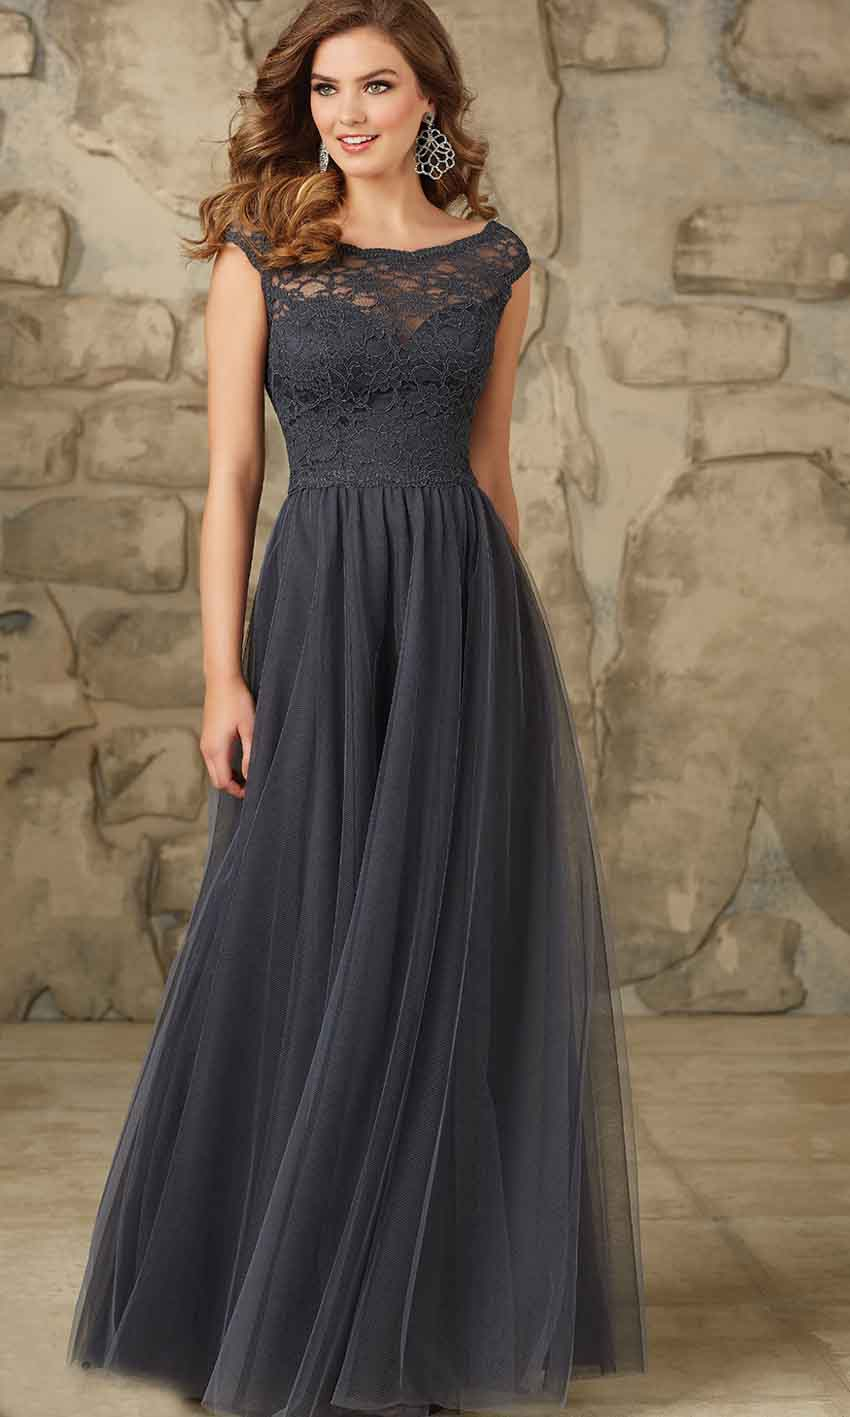 Dark gray long lace bridesmaid dresses uk ksp401 ksp401 9700 dark gray long lace bridesmaid dresses uk ksp401 ksp401 9700 cheap prom dresses uk bridesmaid dresses 2014 prom evening dresses look for cheap ombrellifo Image collections